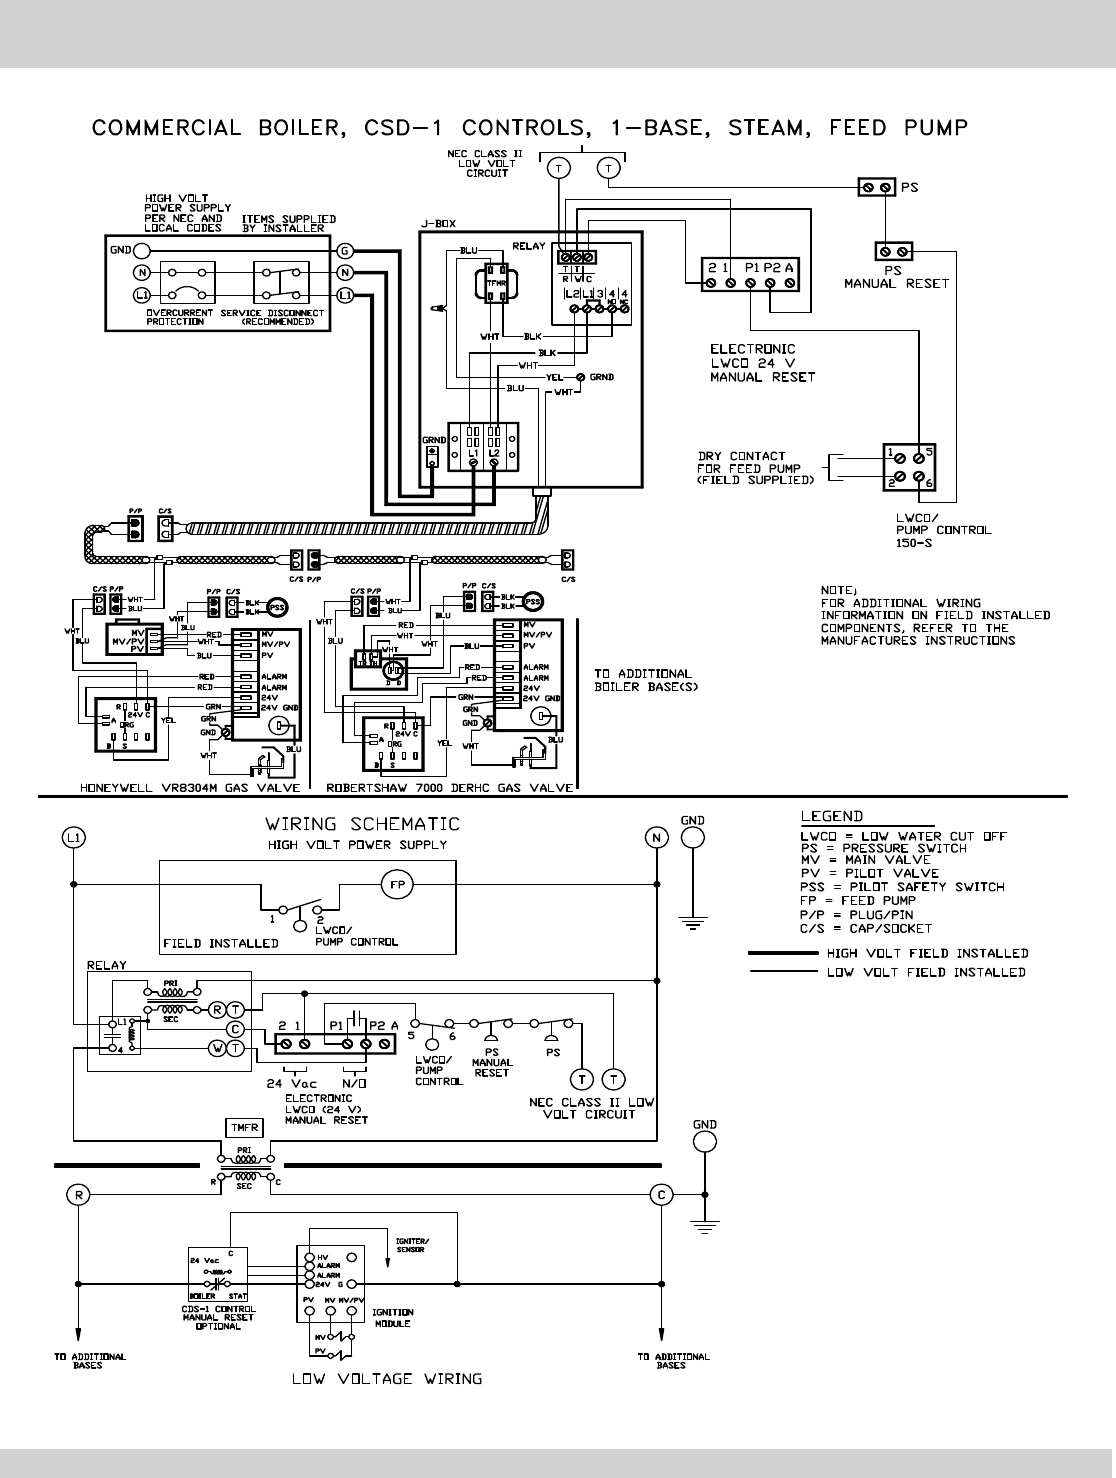 hight resolution of electrical wire diagrams csd 1 steam boilers